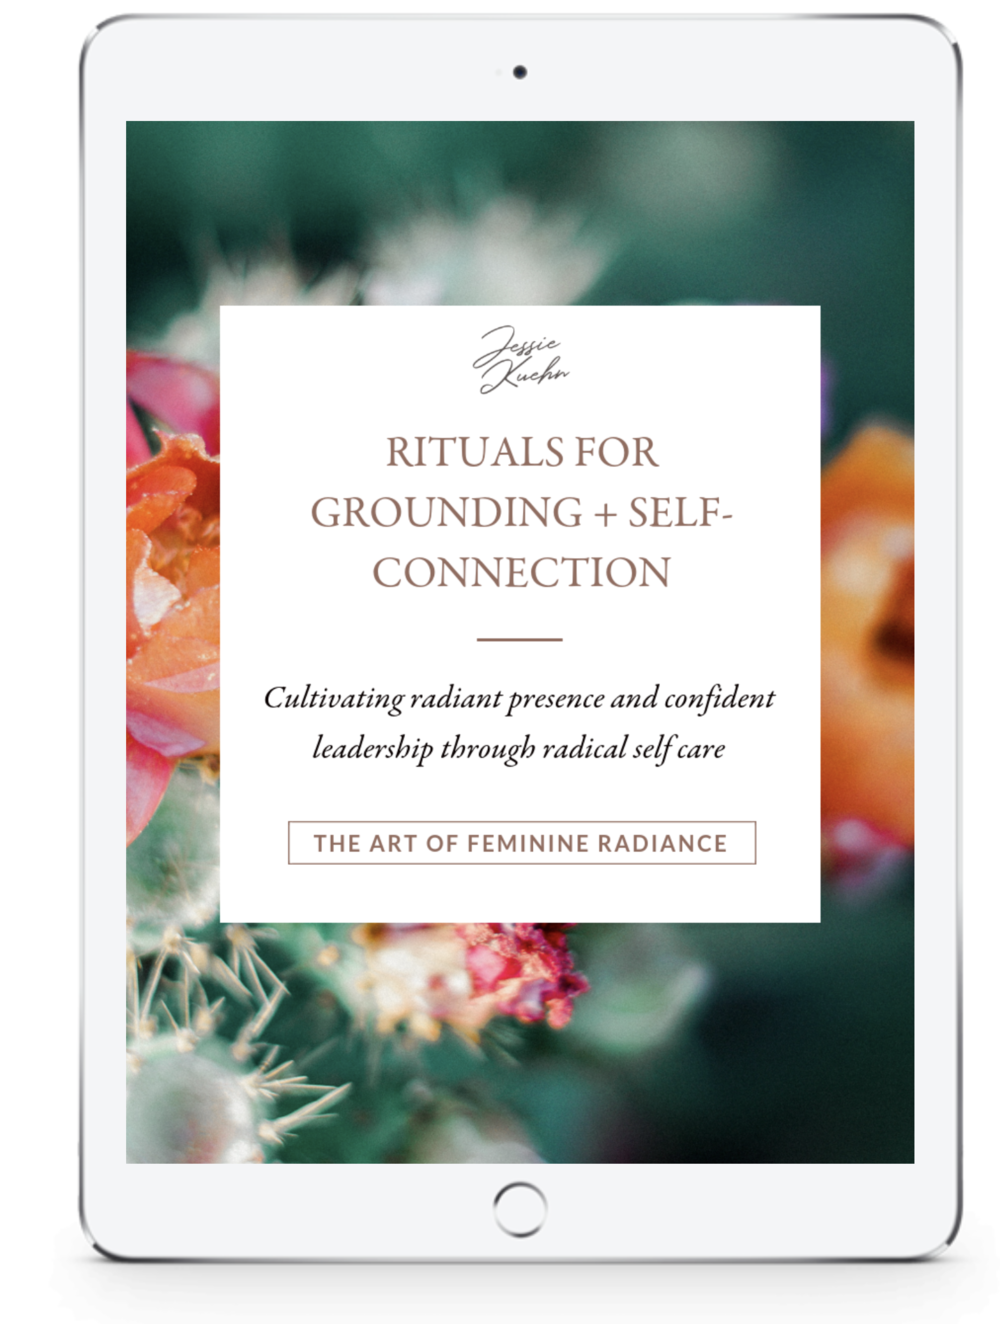 A PLAN OF ACTION FOLLOWING EACH SESSION, PERSONALIZED DAILY PRACTICES, AND CUSTOM-TAILORED RESOURCES - After each session you'll receive a clear, typed action plan rich with targeted, results-oriented action steps designed to create the freedom, confidence, and fulfillment that you yearn for in your life. It is my intention that you have everything you need to create deep, sustainable inner alchemy without information overwhelm and inner chaos. During our time together you'll receive customized resources (reading suggestions, videos, audios & PDF's) curated around what is relevant to your unique transformational journey.